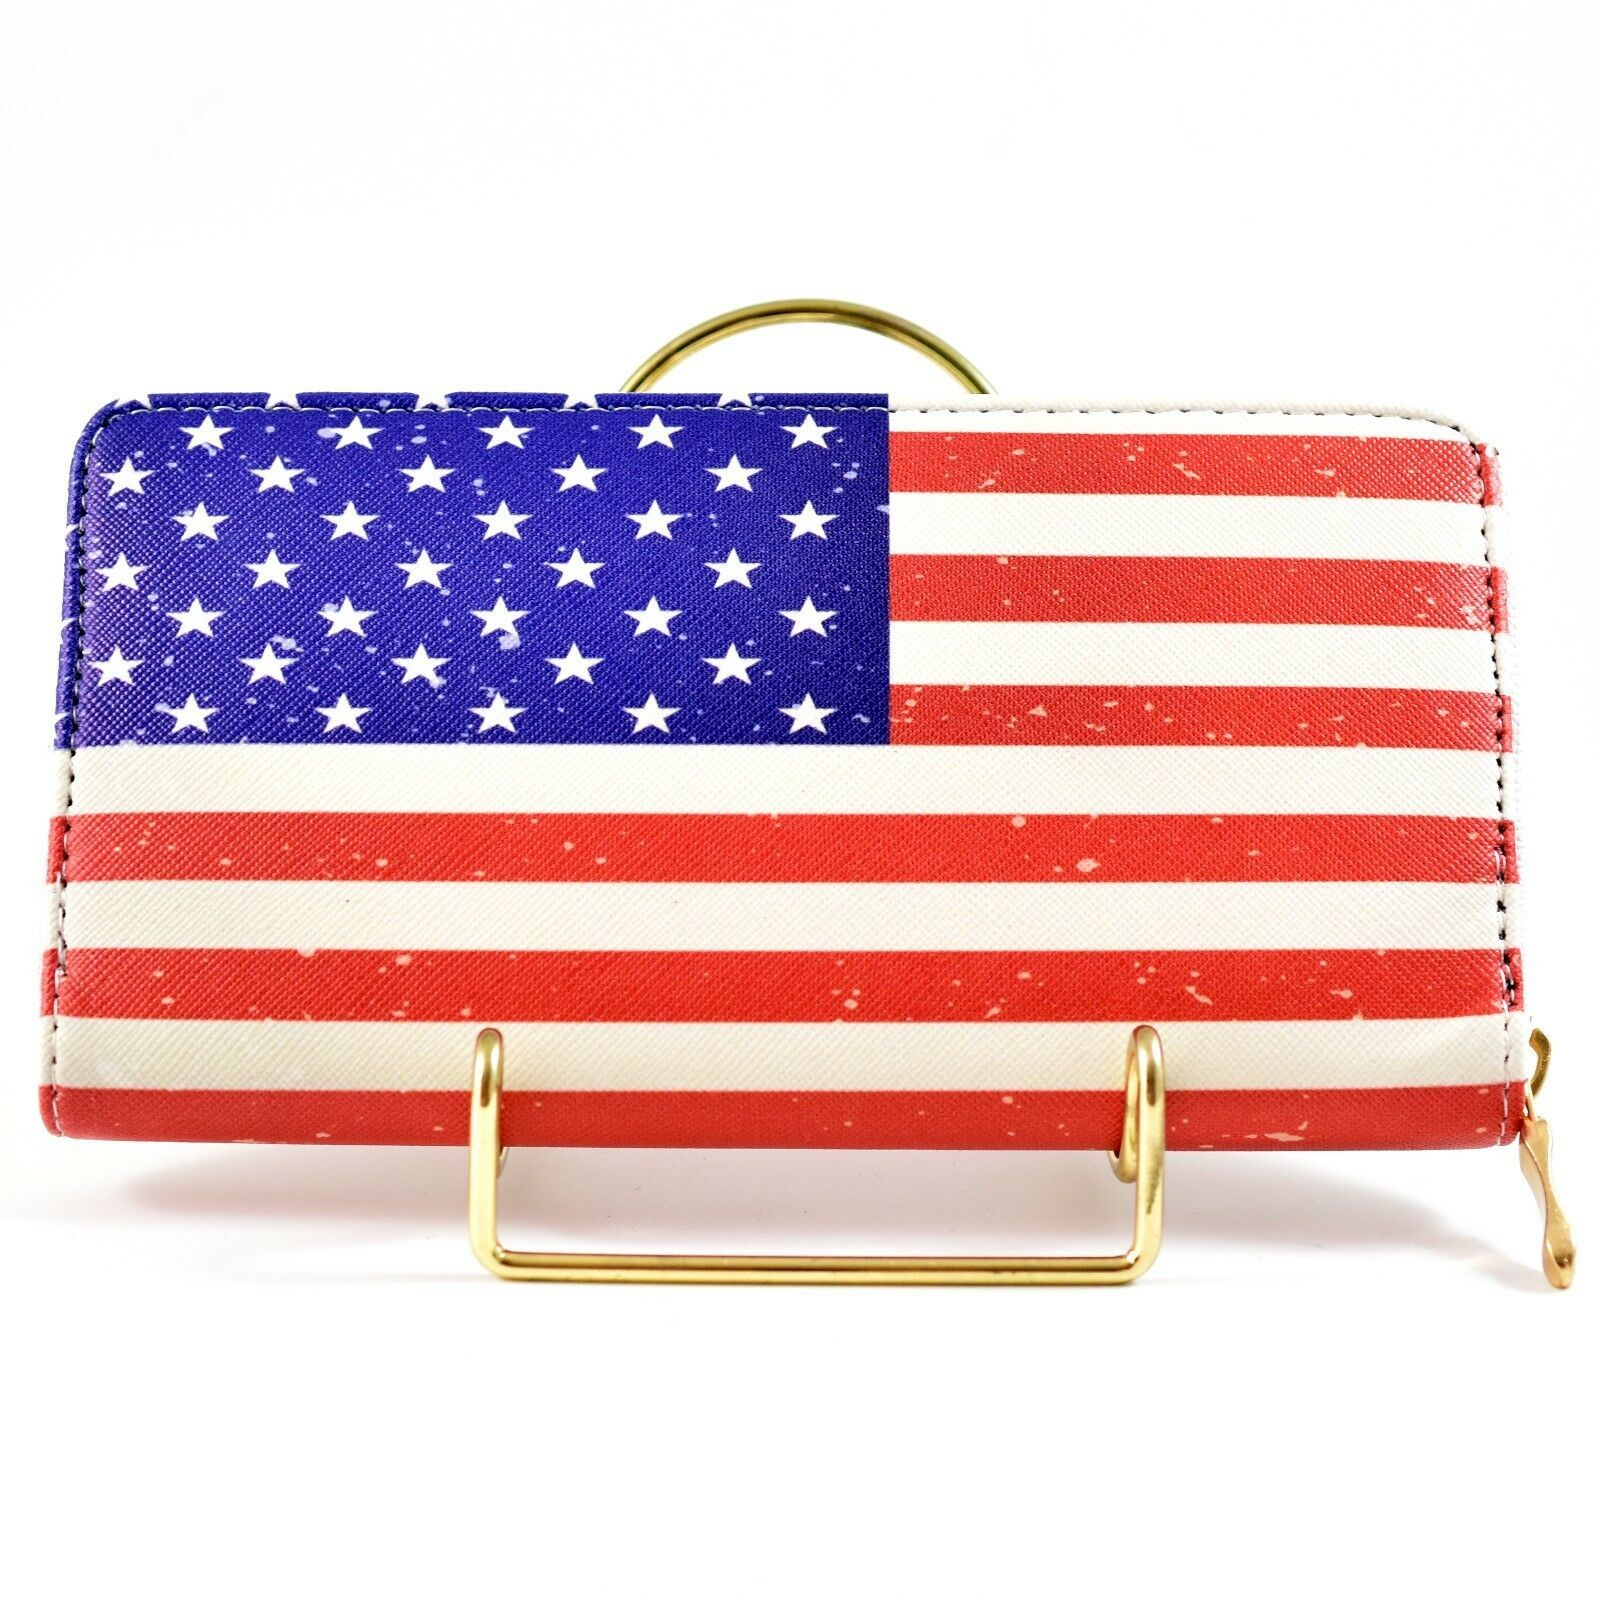 American Flag USA Red White Blue Patriotic Clutch Wallet New